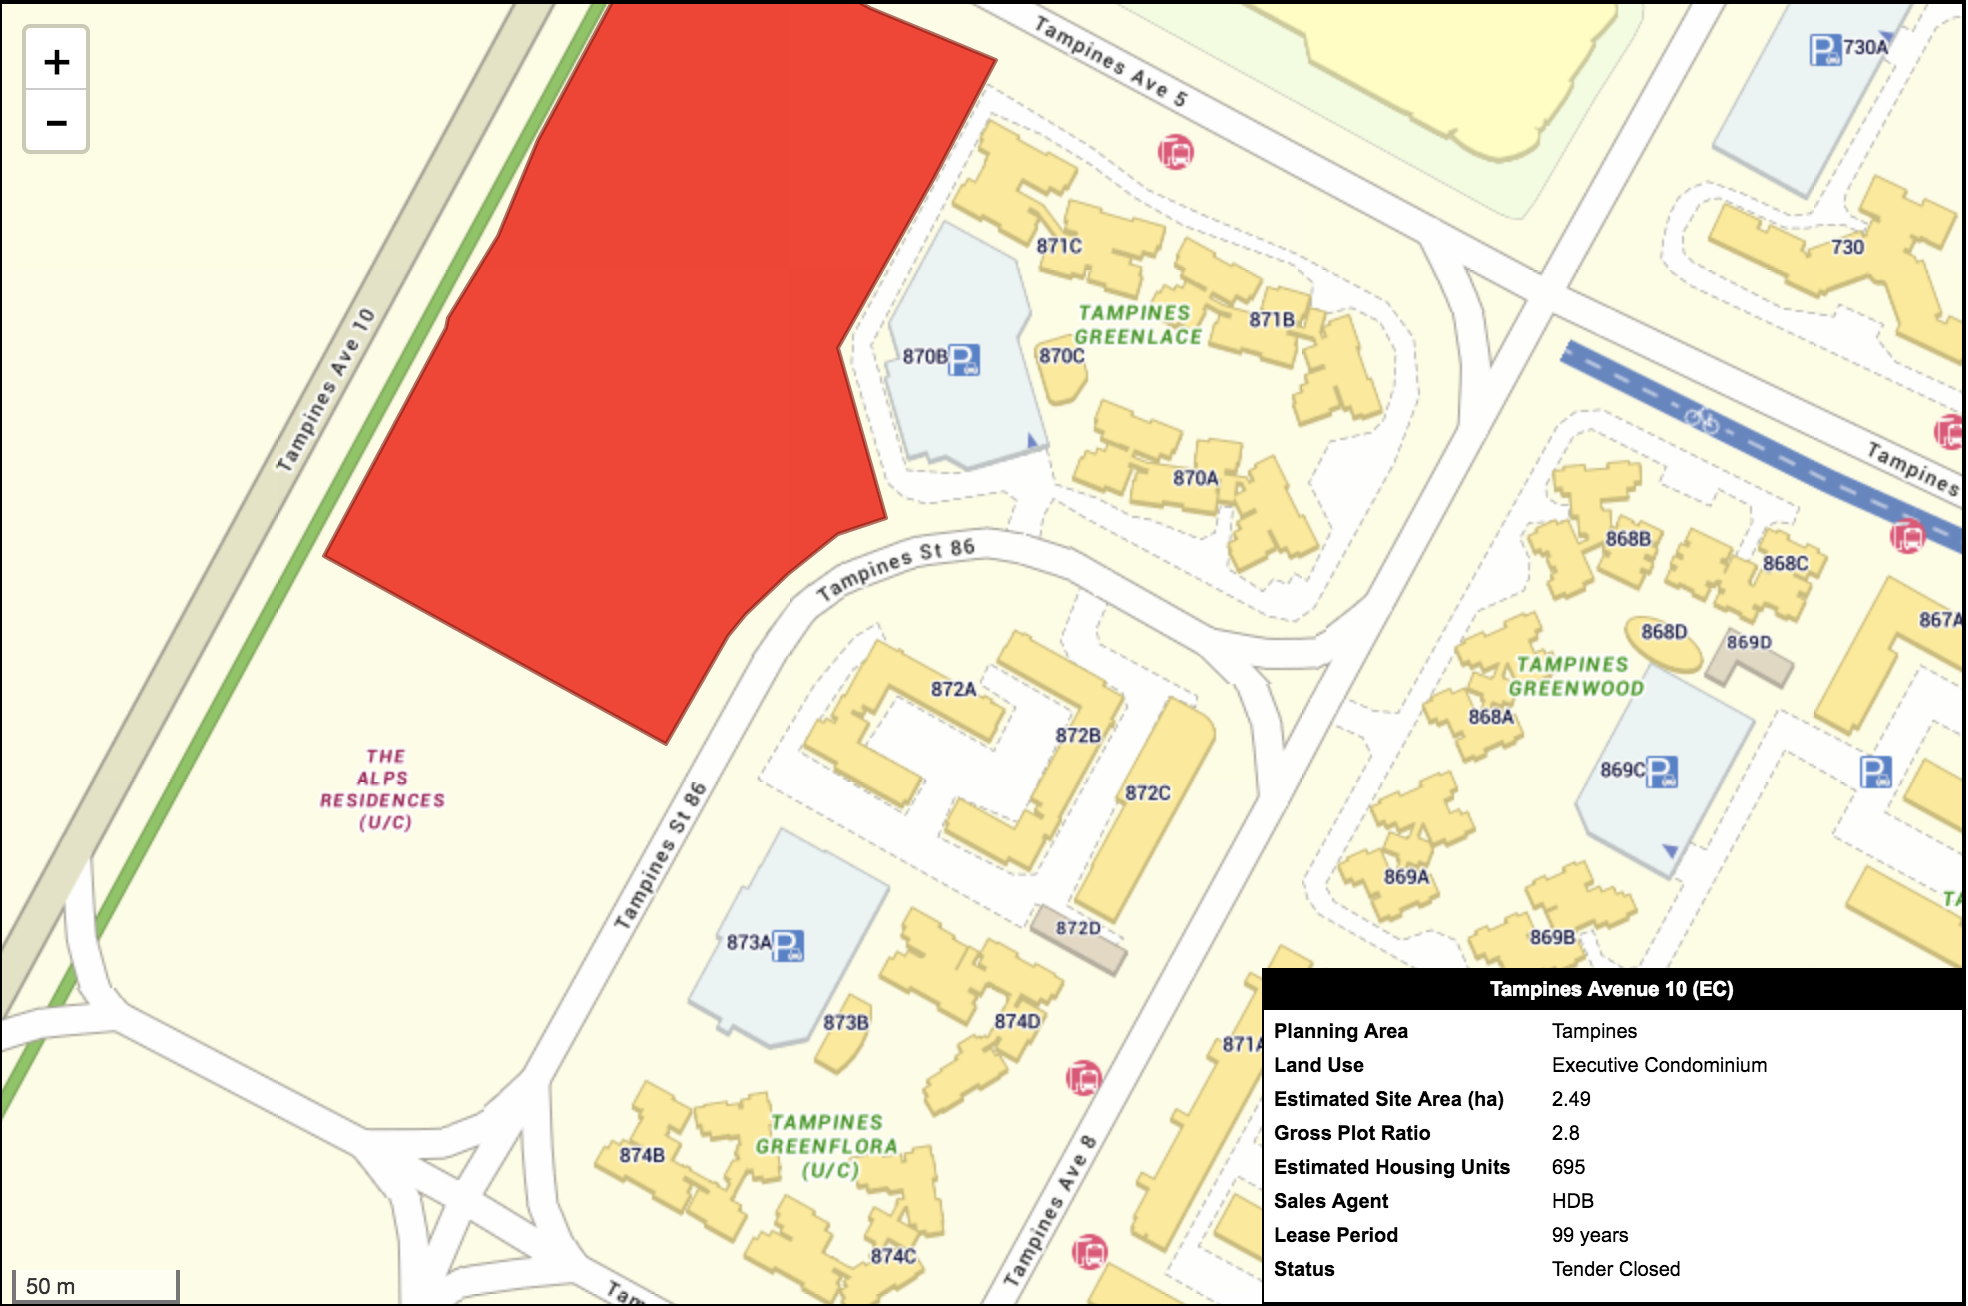 New EC location at Tampines launching in 2019